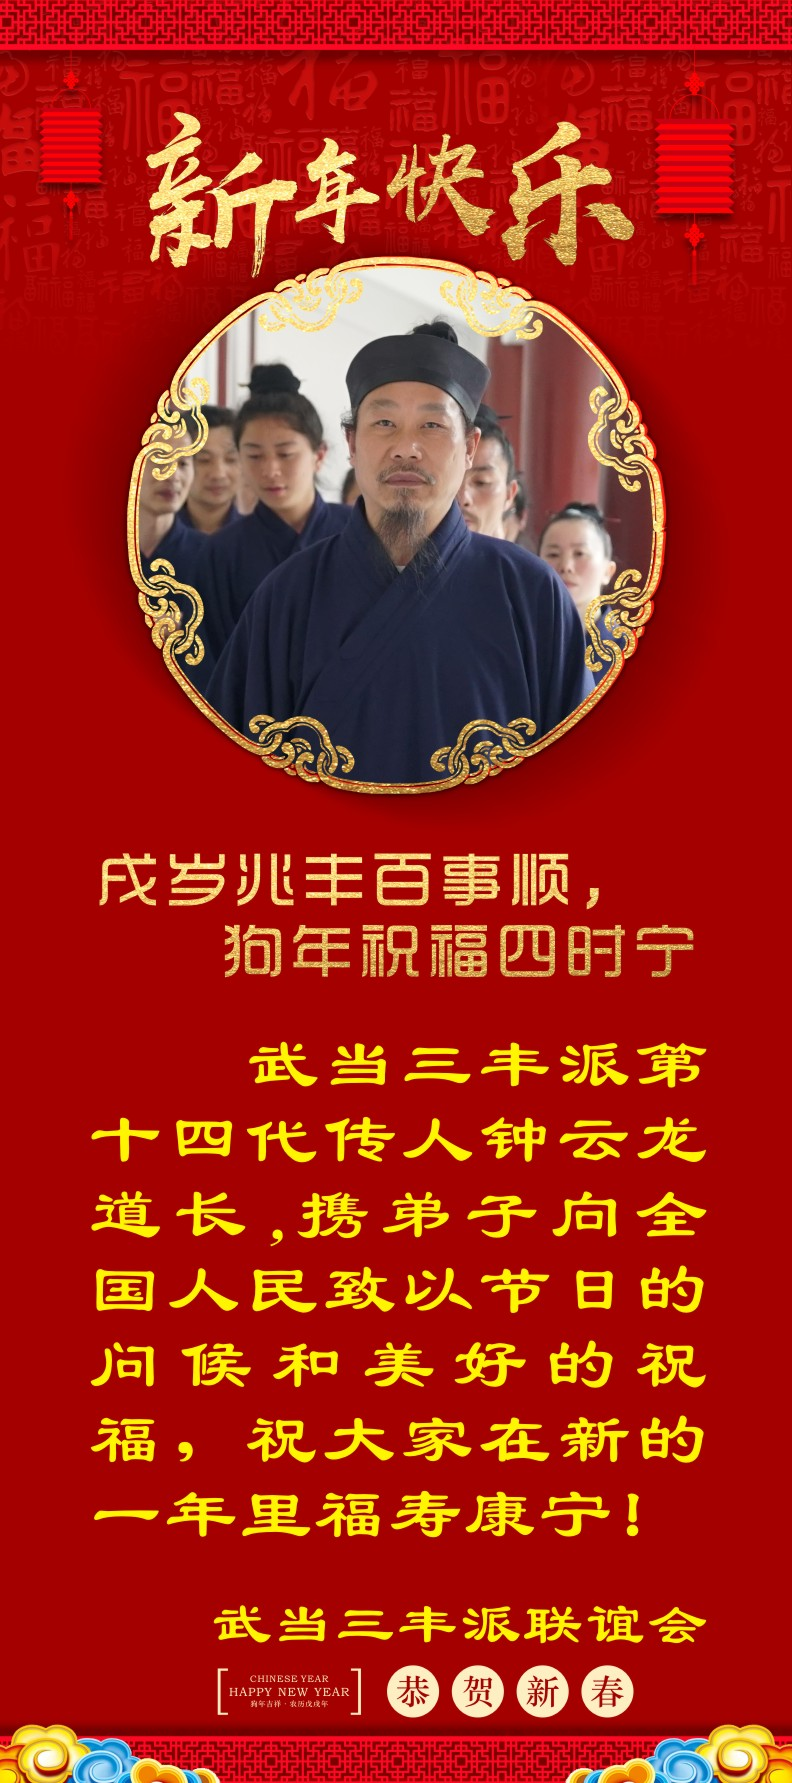 <strong><font color='#E61A1A'>钟云龙道长2018戊戌新年祝辞(图文)</font></strong>